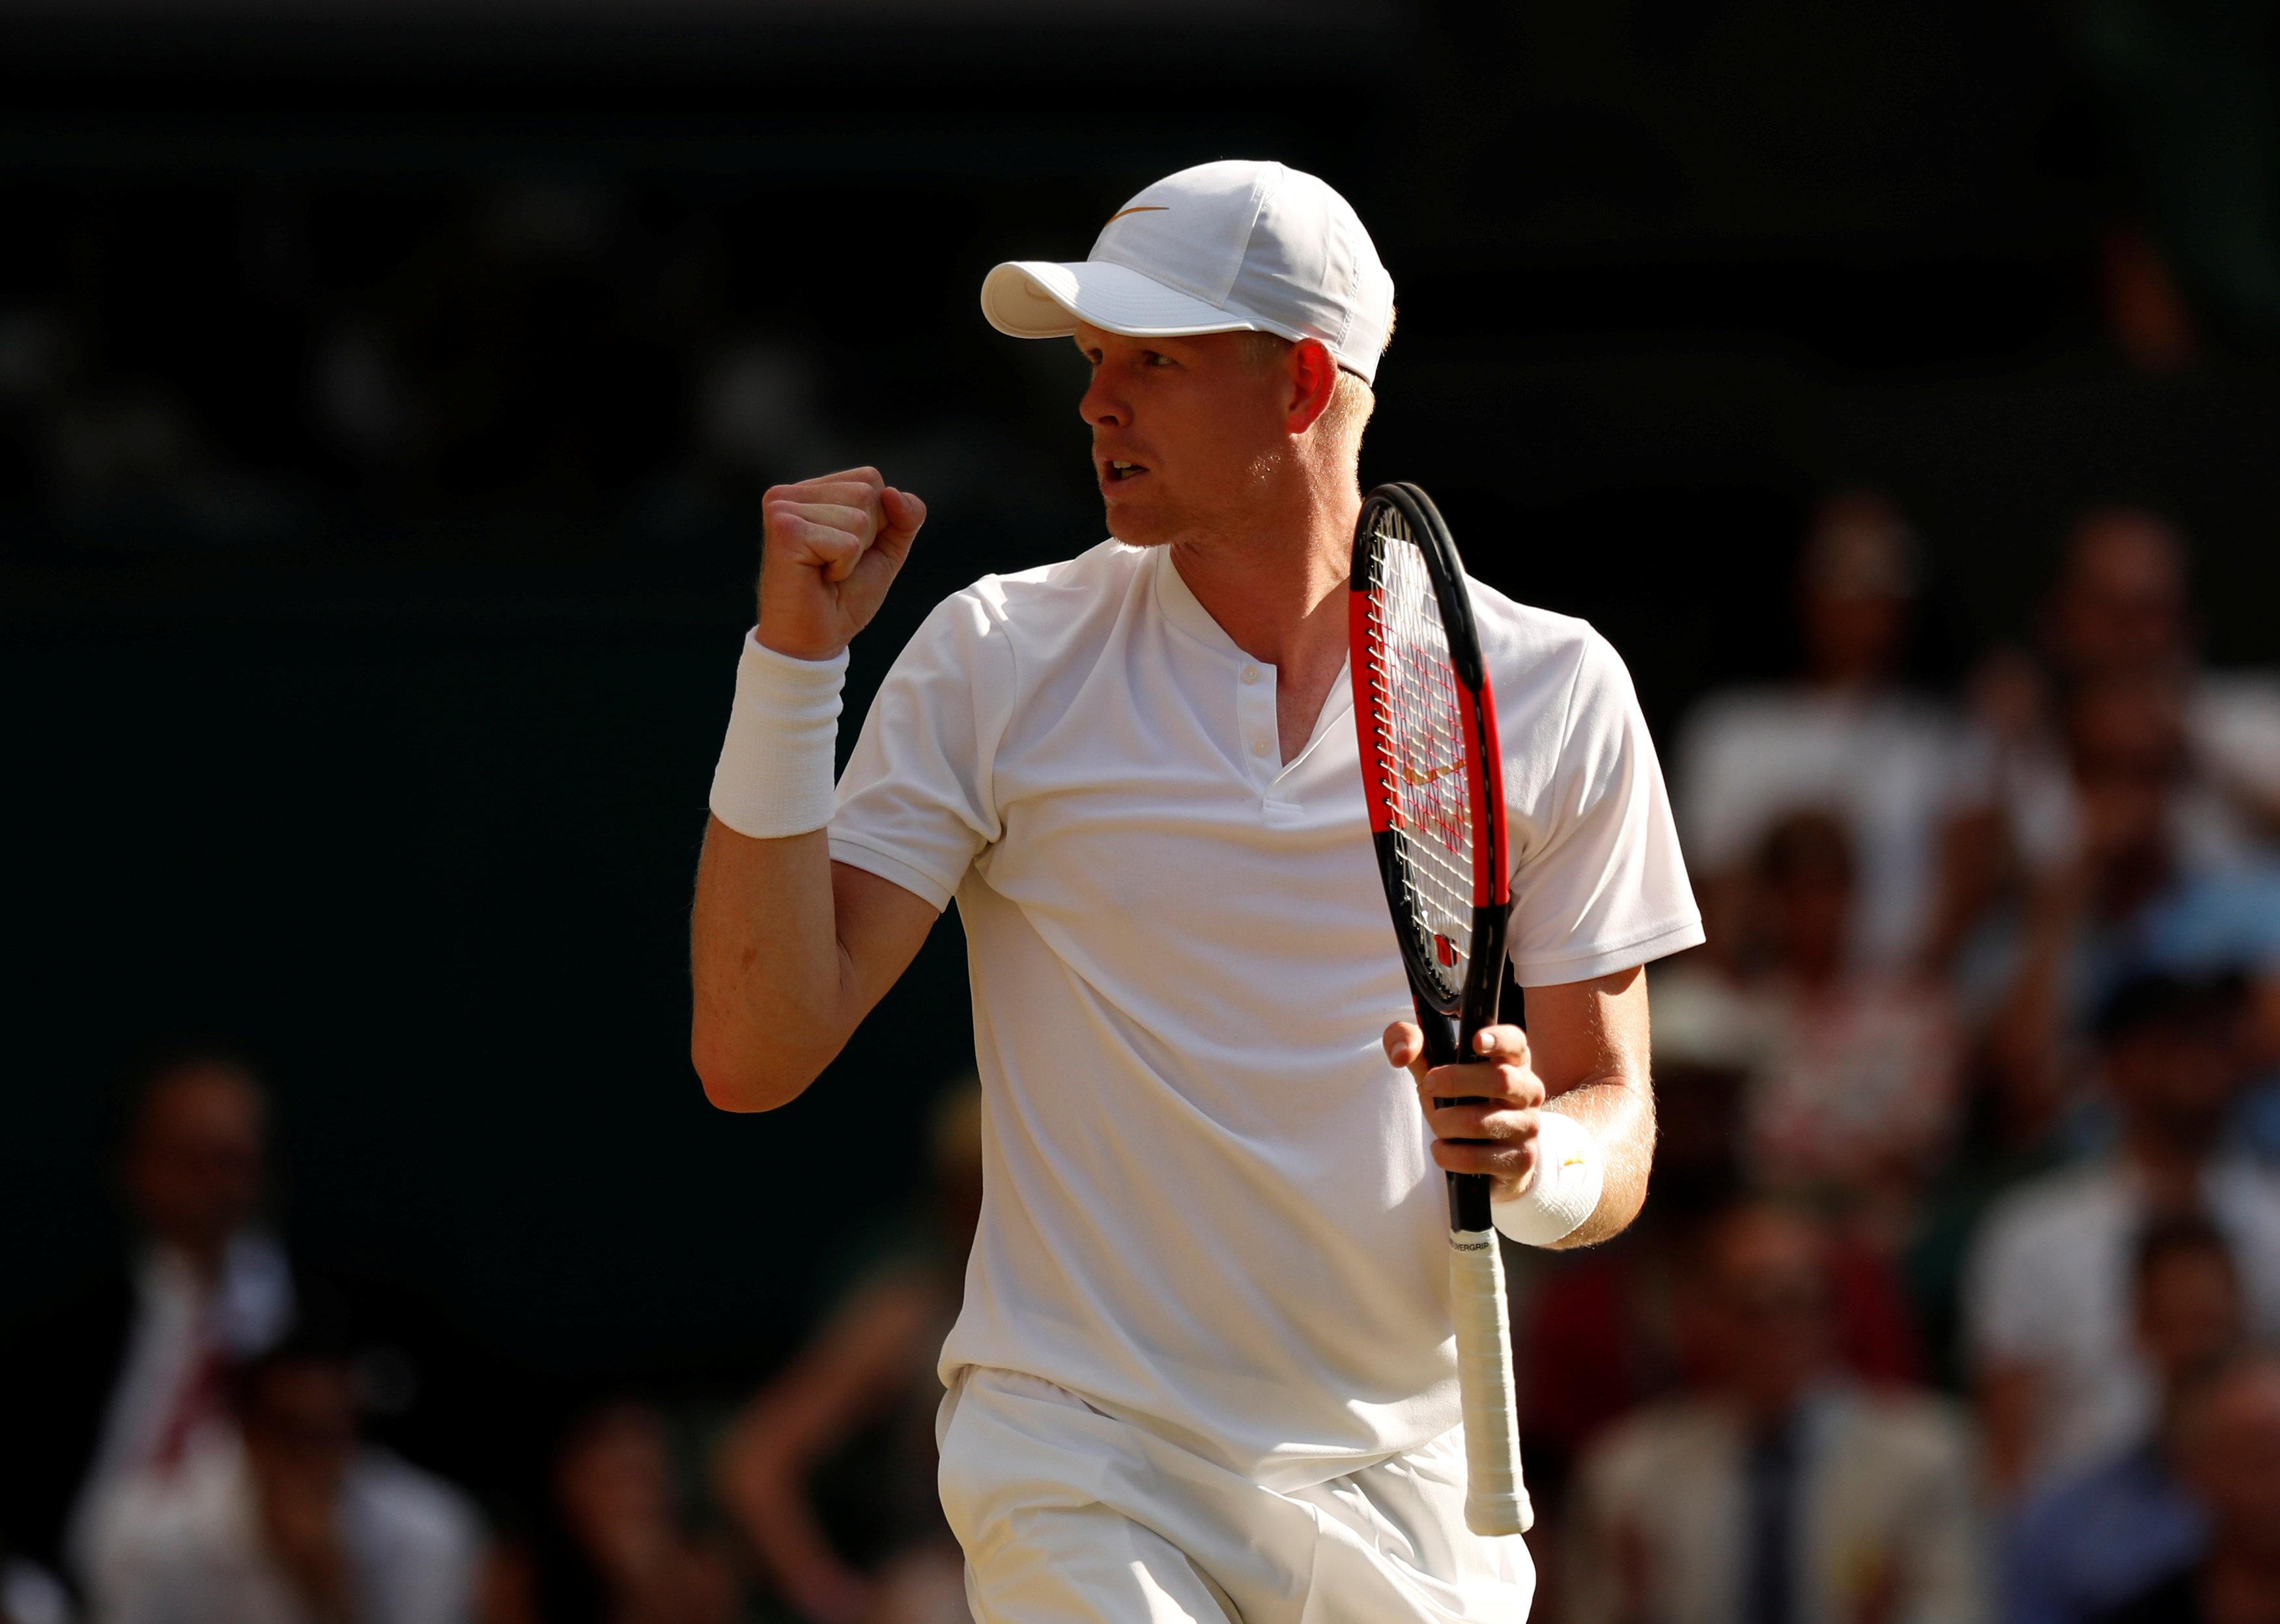 British No1 Kyle Edmund has moved up one place to No16 in the world